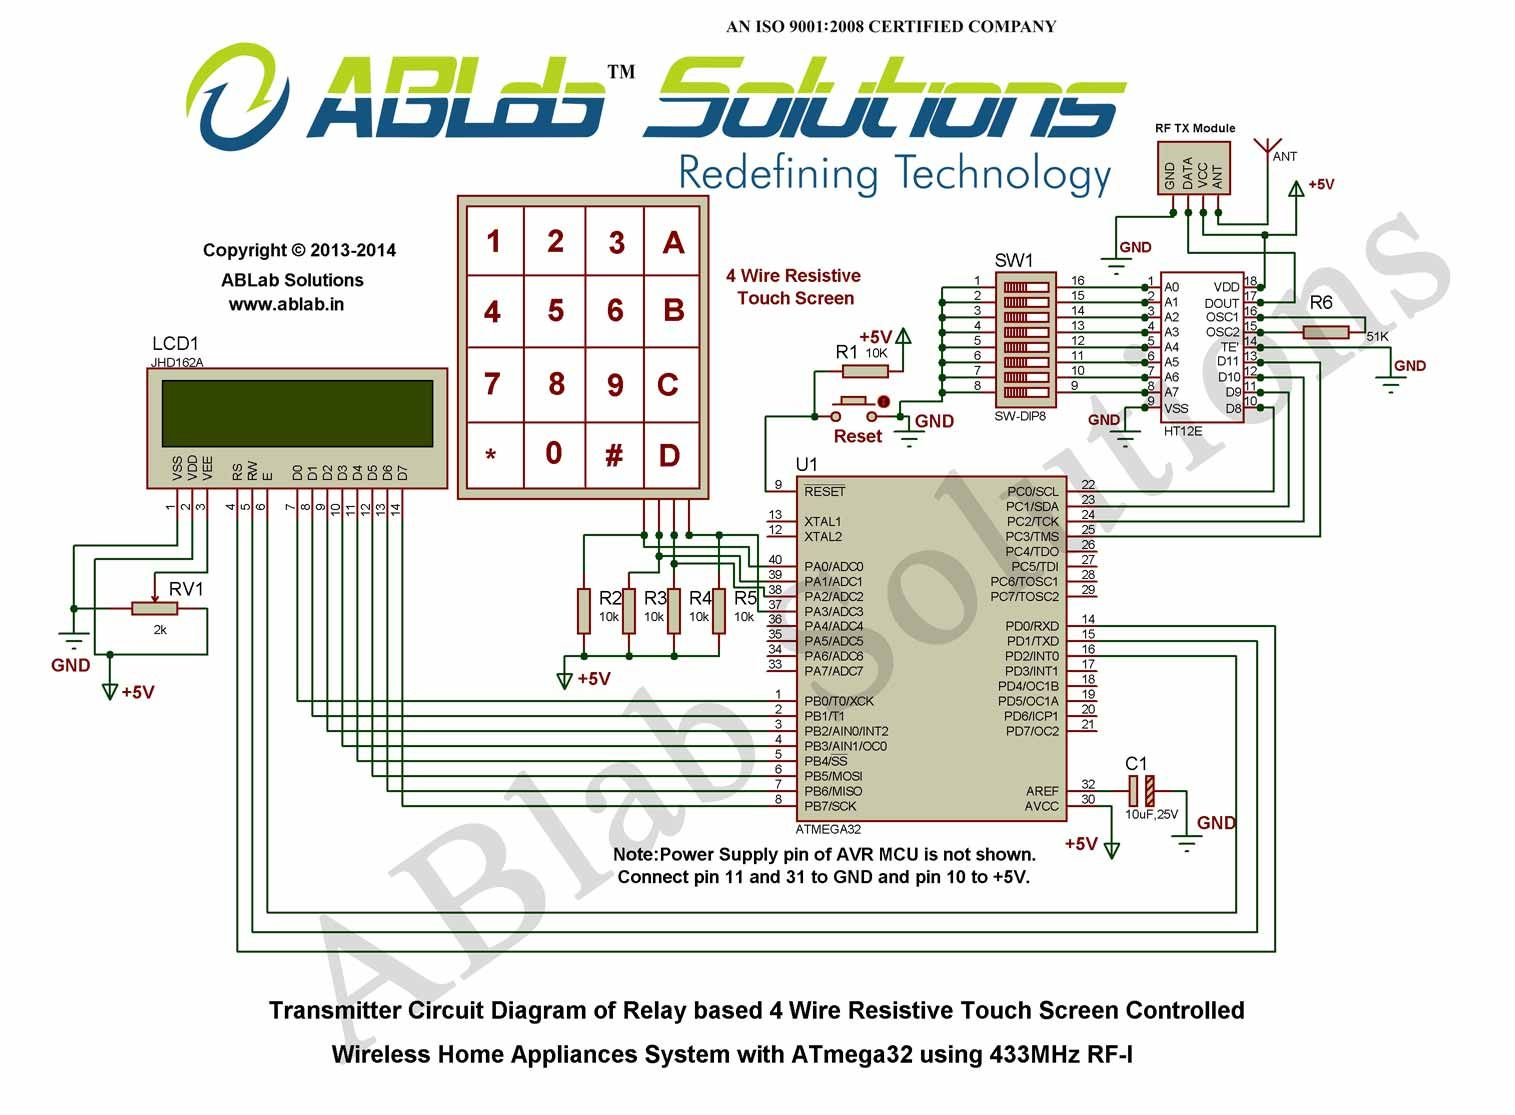 Relay Based 4 Wire Resistive Touch Screen Controlled Wireless Home 433mhz Rf Transmitter Circuit Diagram Appliances System With Avr Atmega32 Microcontroller Using I